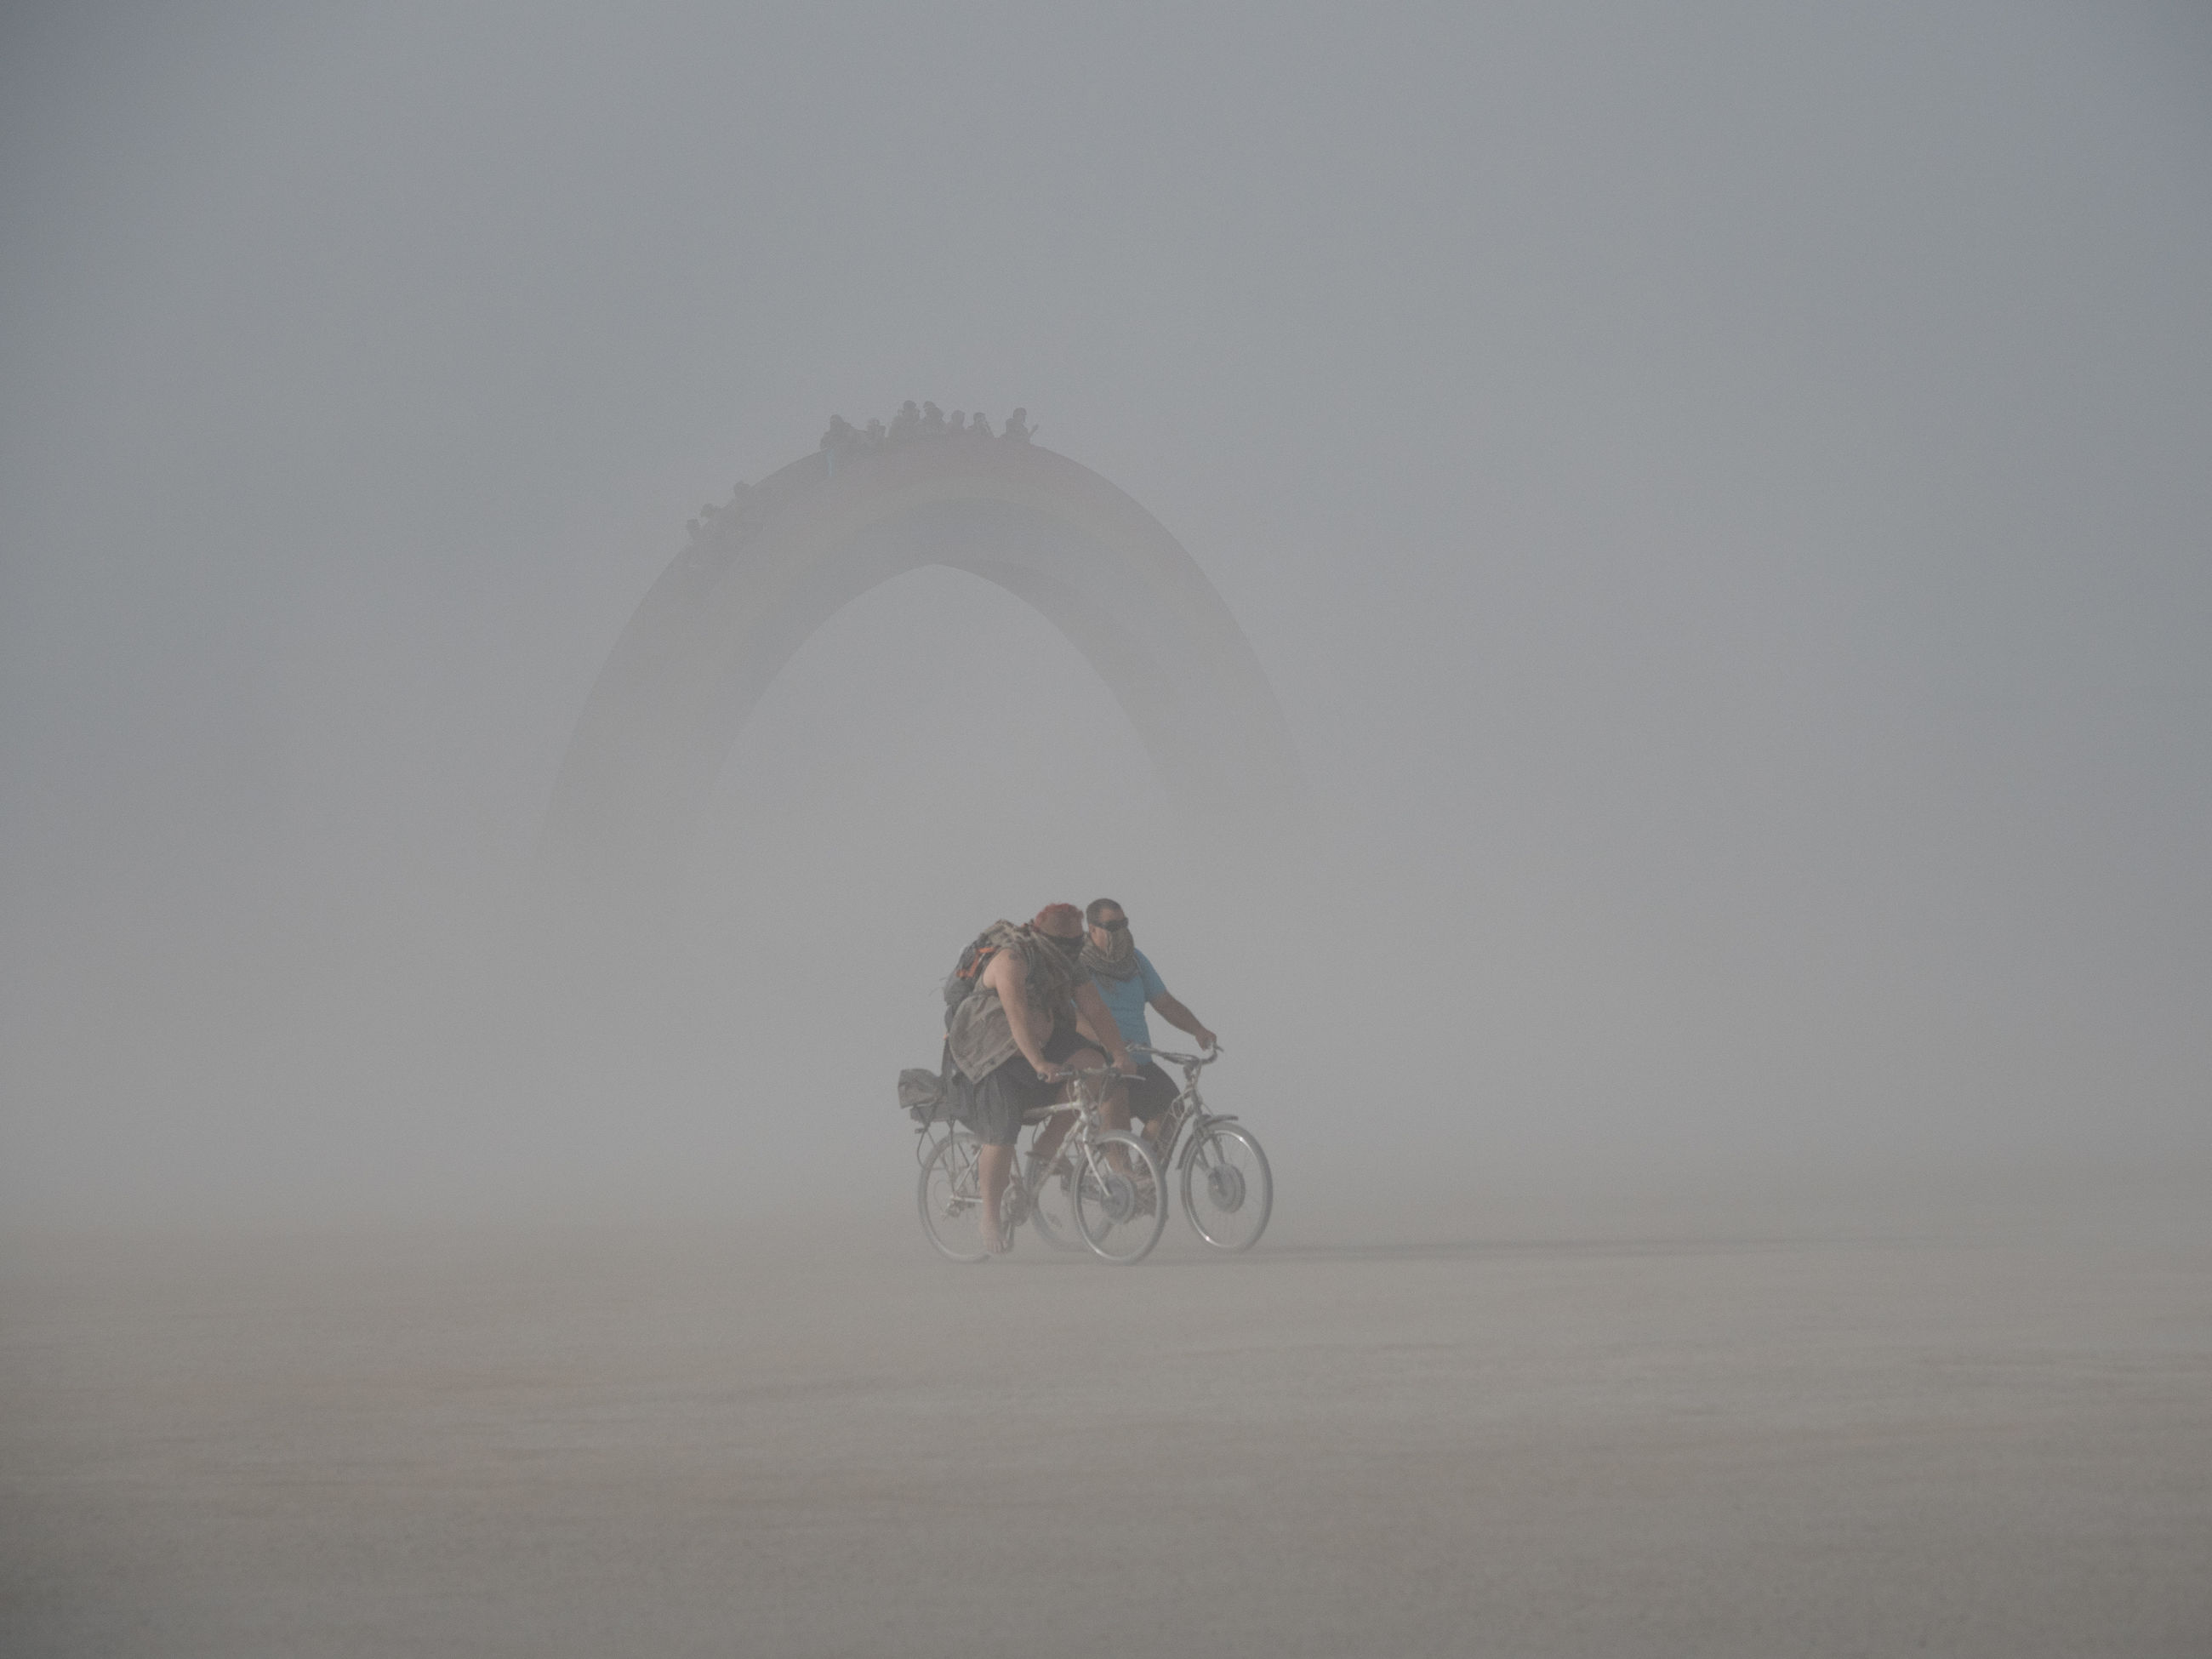 one person, transportation, sport, riding, bicycle, real people, ride, mode of transportation, lifestyles, fog, full length, copy space, land vehicle, activity, side view, leisure activity, motion, nature